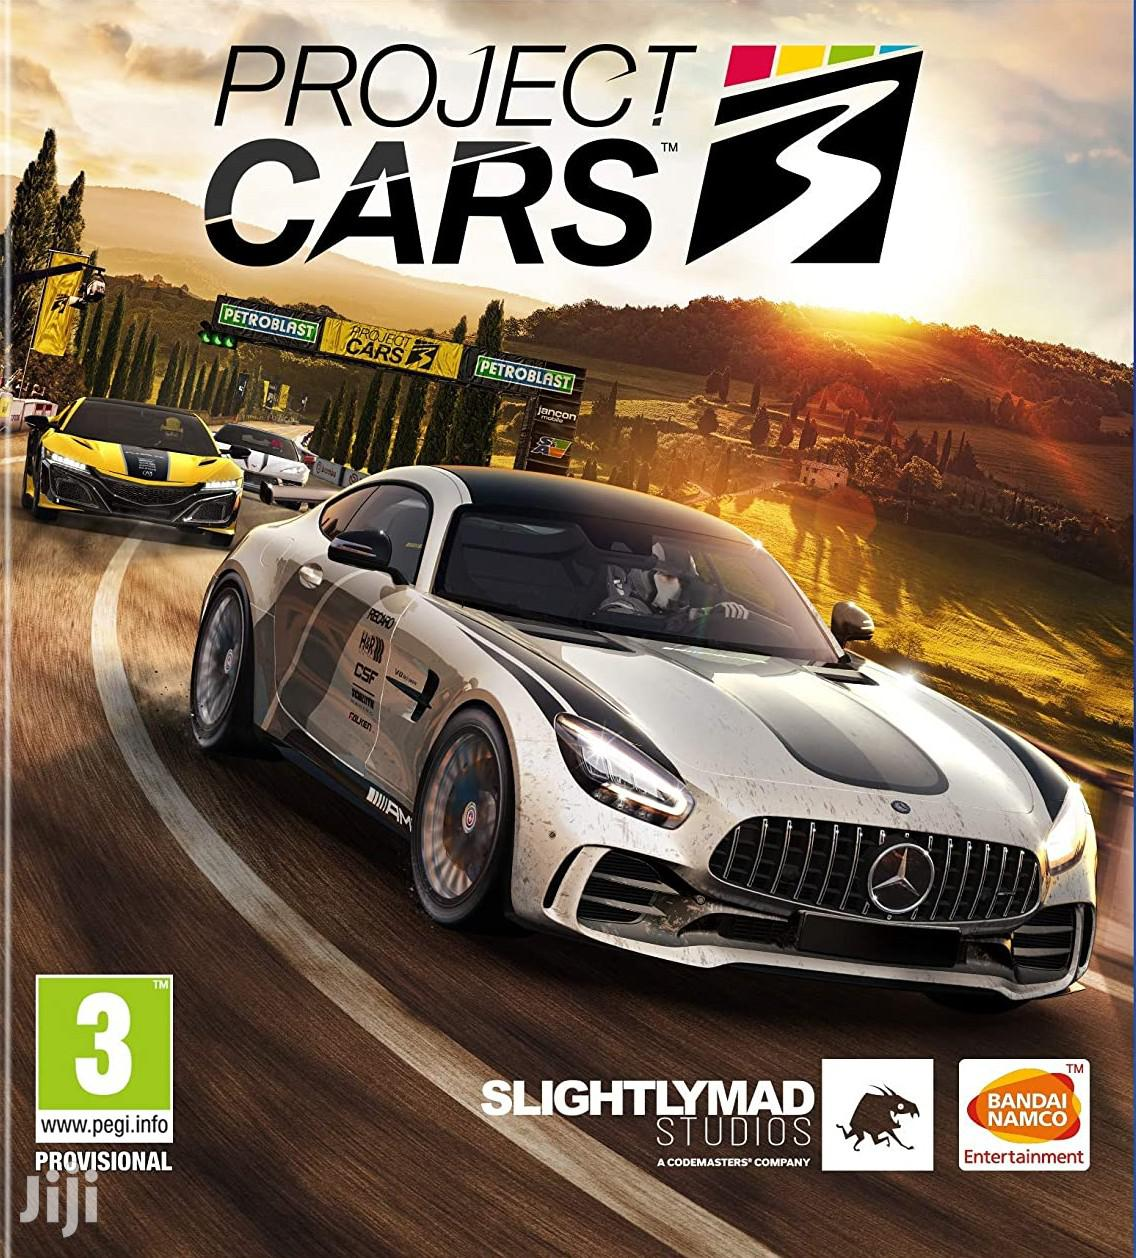 Project Cars 3 PC Game